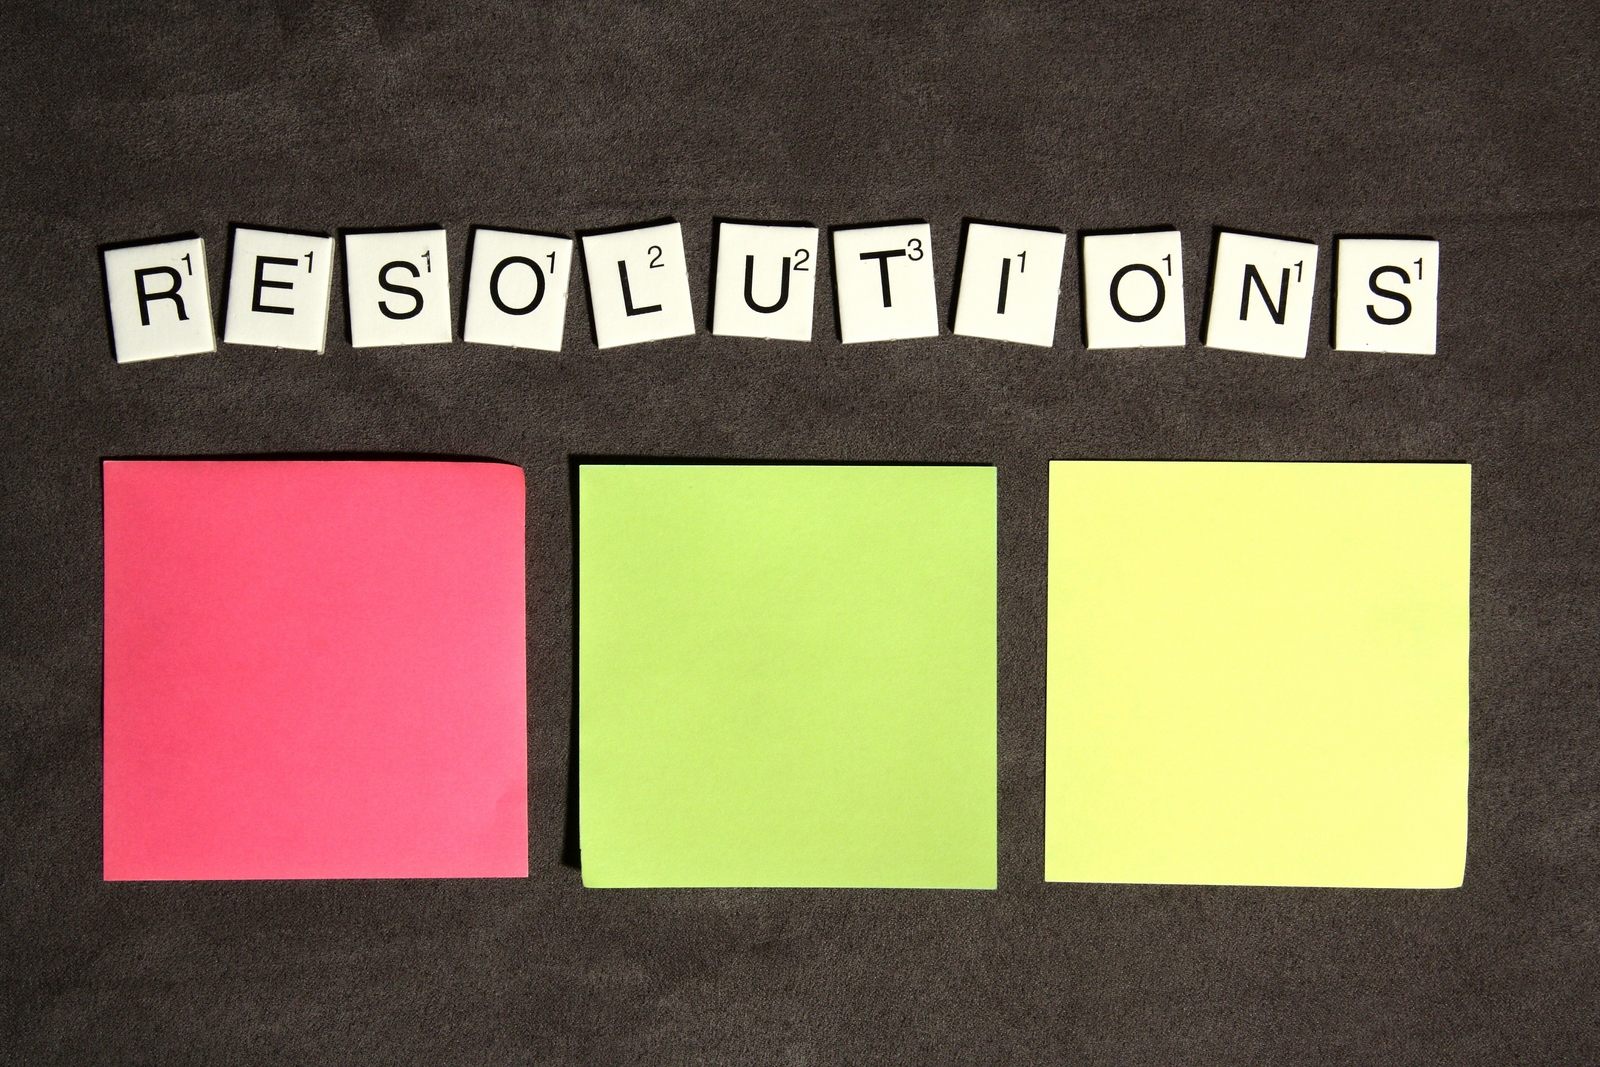 ACCOUNTABILITY - Accountability - necessary to keep you on track! Accountability is a powerful tool to help you reach your goals. But you need someone you can trust, and someone you know cares about you. That's where your Sanctuary Team comes in! You will be held accountable for 10 weeks by your trusted Sanctuary instructors with weekly check-in texts/emails/in person meetings to review your daily food logs and your progress on the bi-weekly wellness challenges. You will have weekly body composition tracking and required workout attendance on Sundays, plus a point system to help keep you motivated and on track.